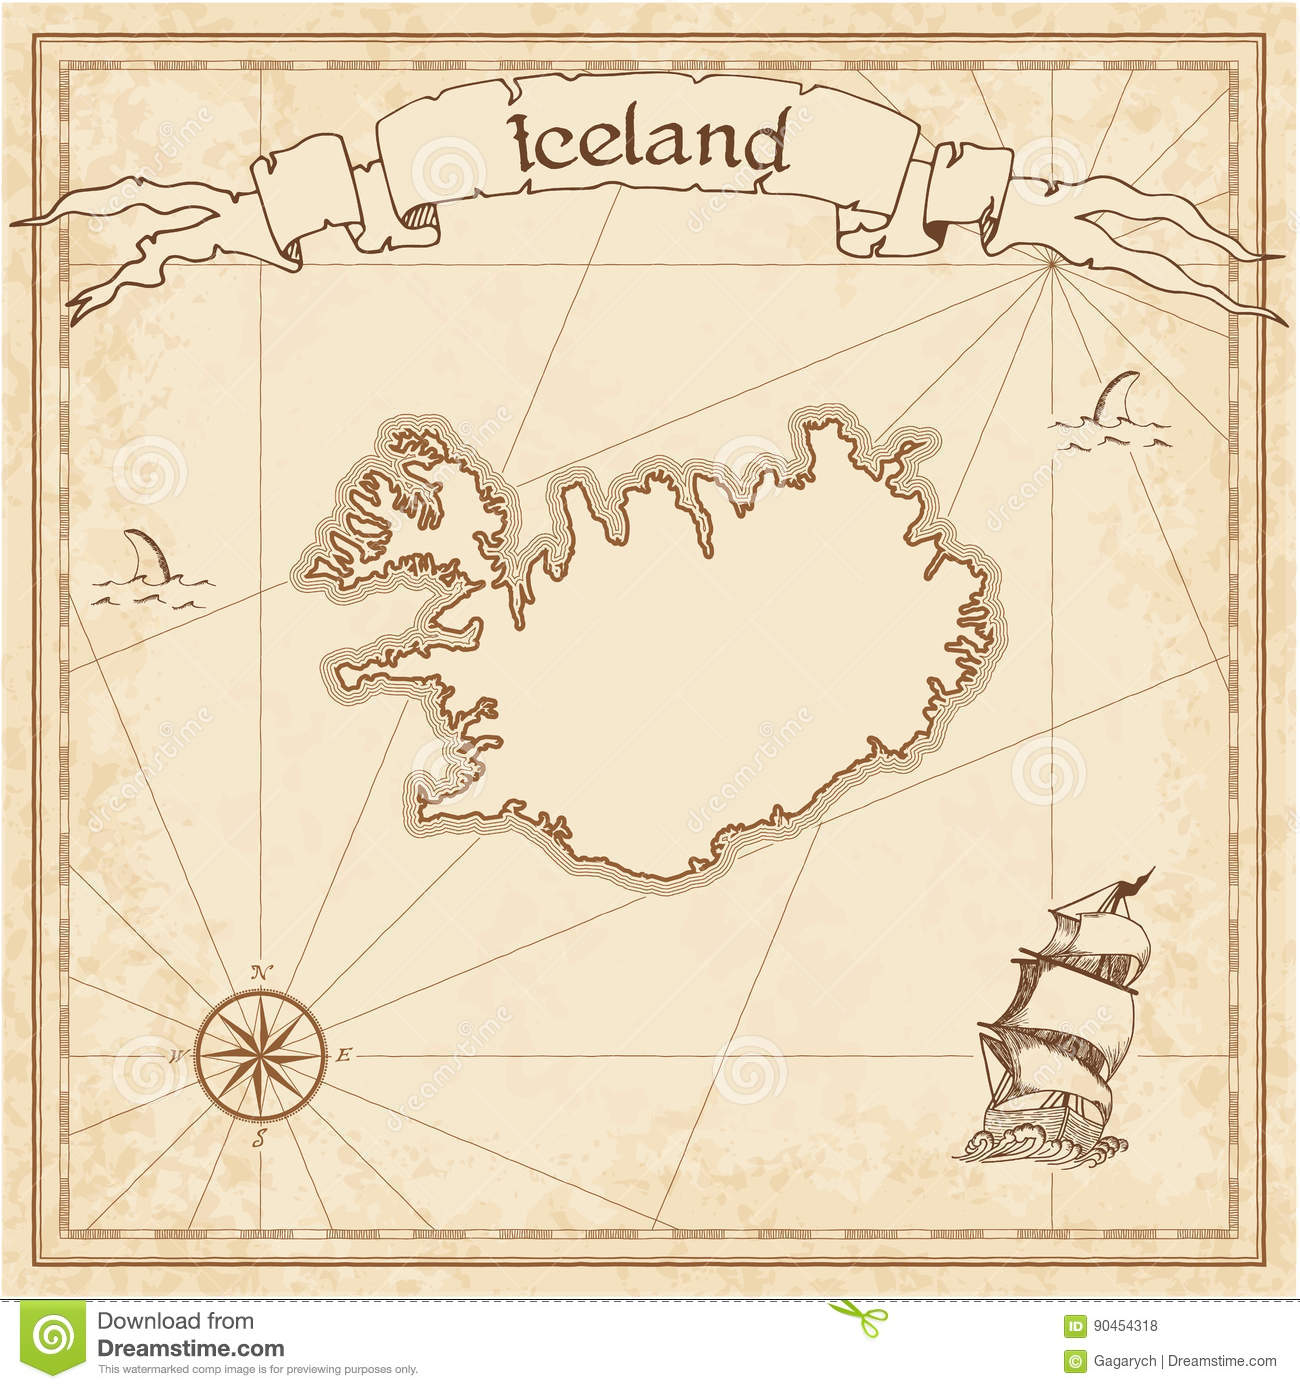 Download Iceland Old Treasure Map Stock Vector Illustration Of Drawing